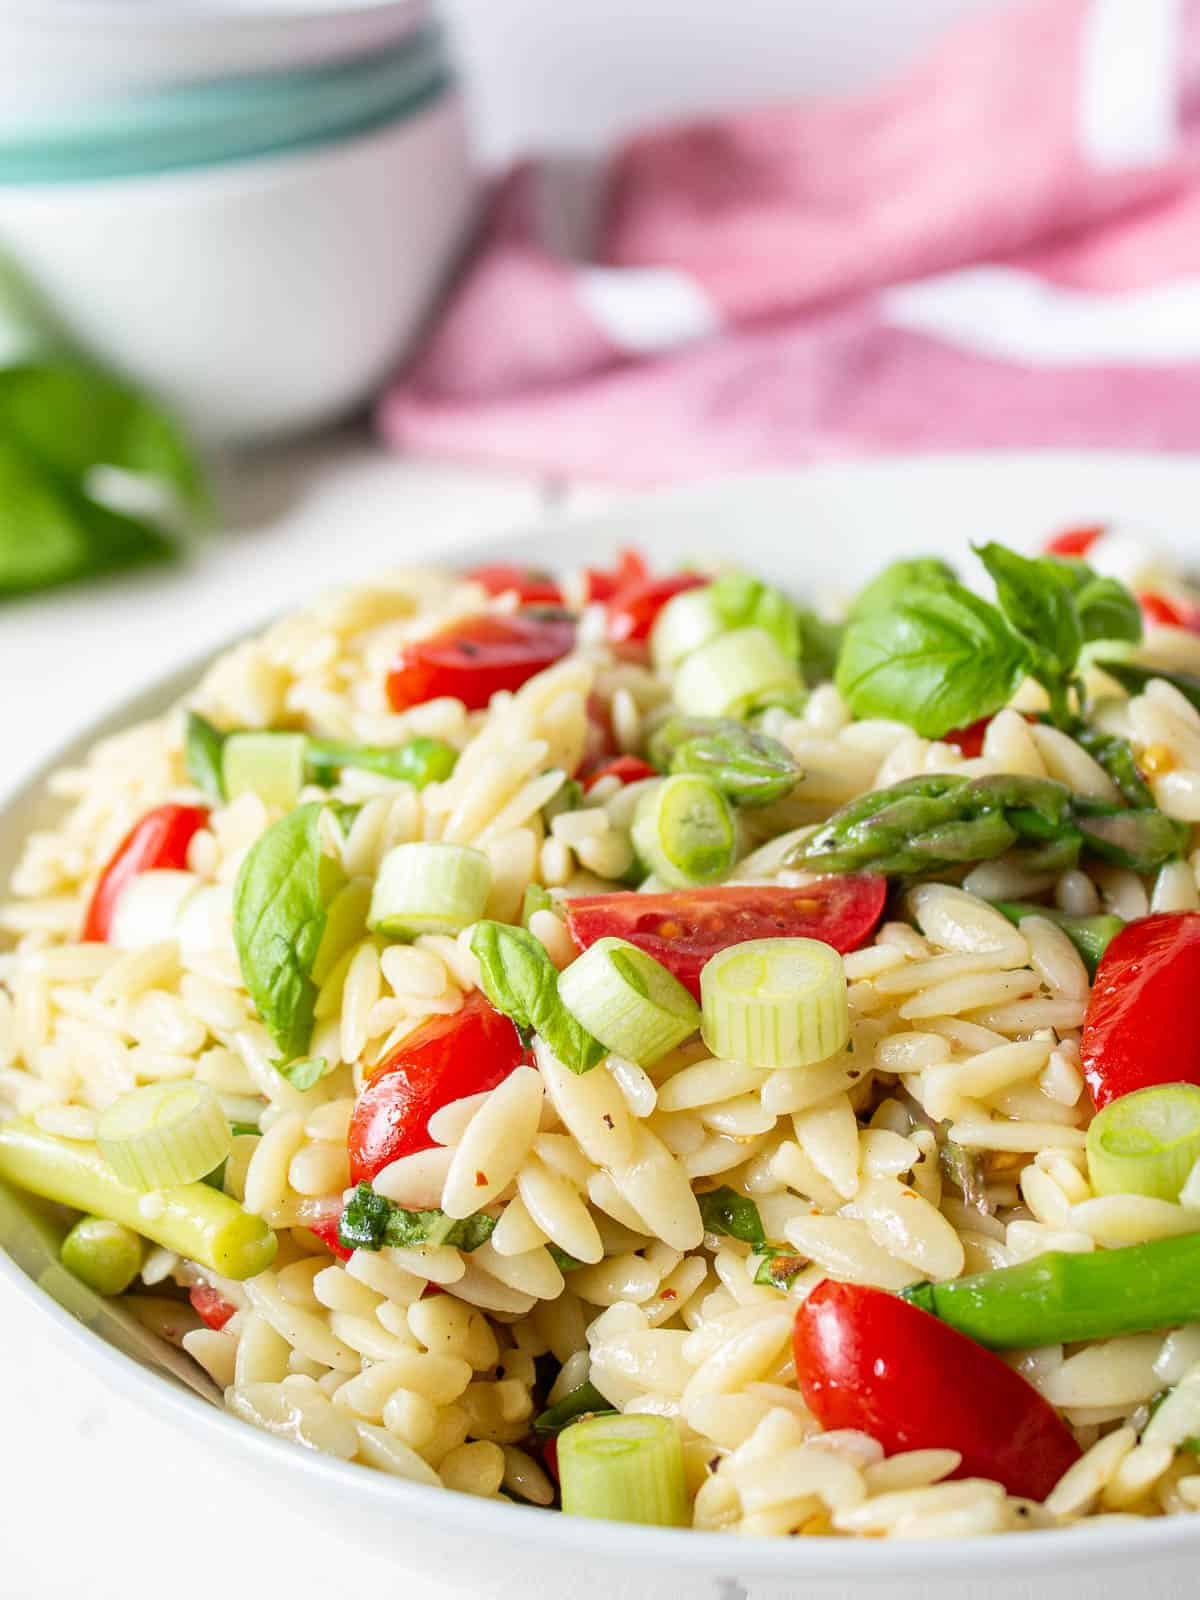 Orzo pasta with chopped asparagus and cherry tomatoes in a white bowl.